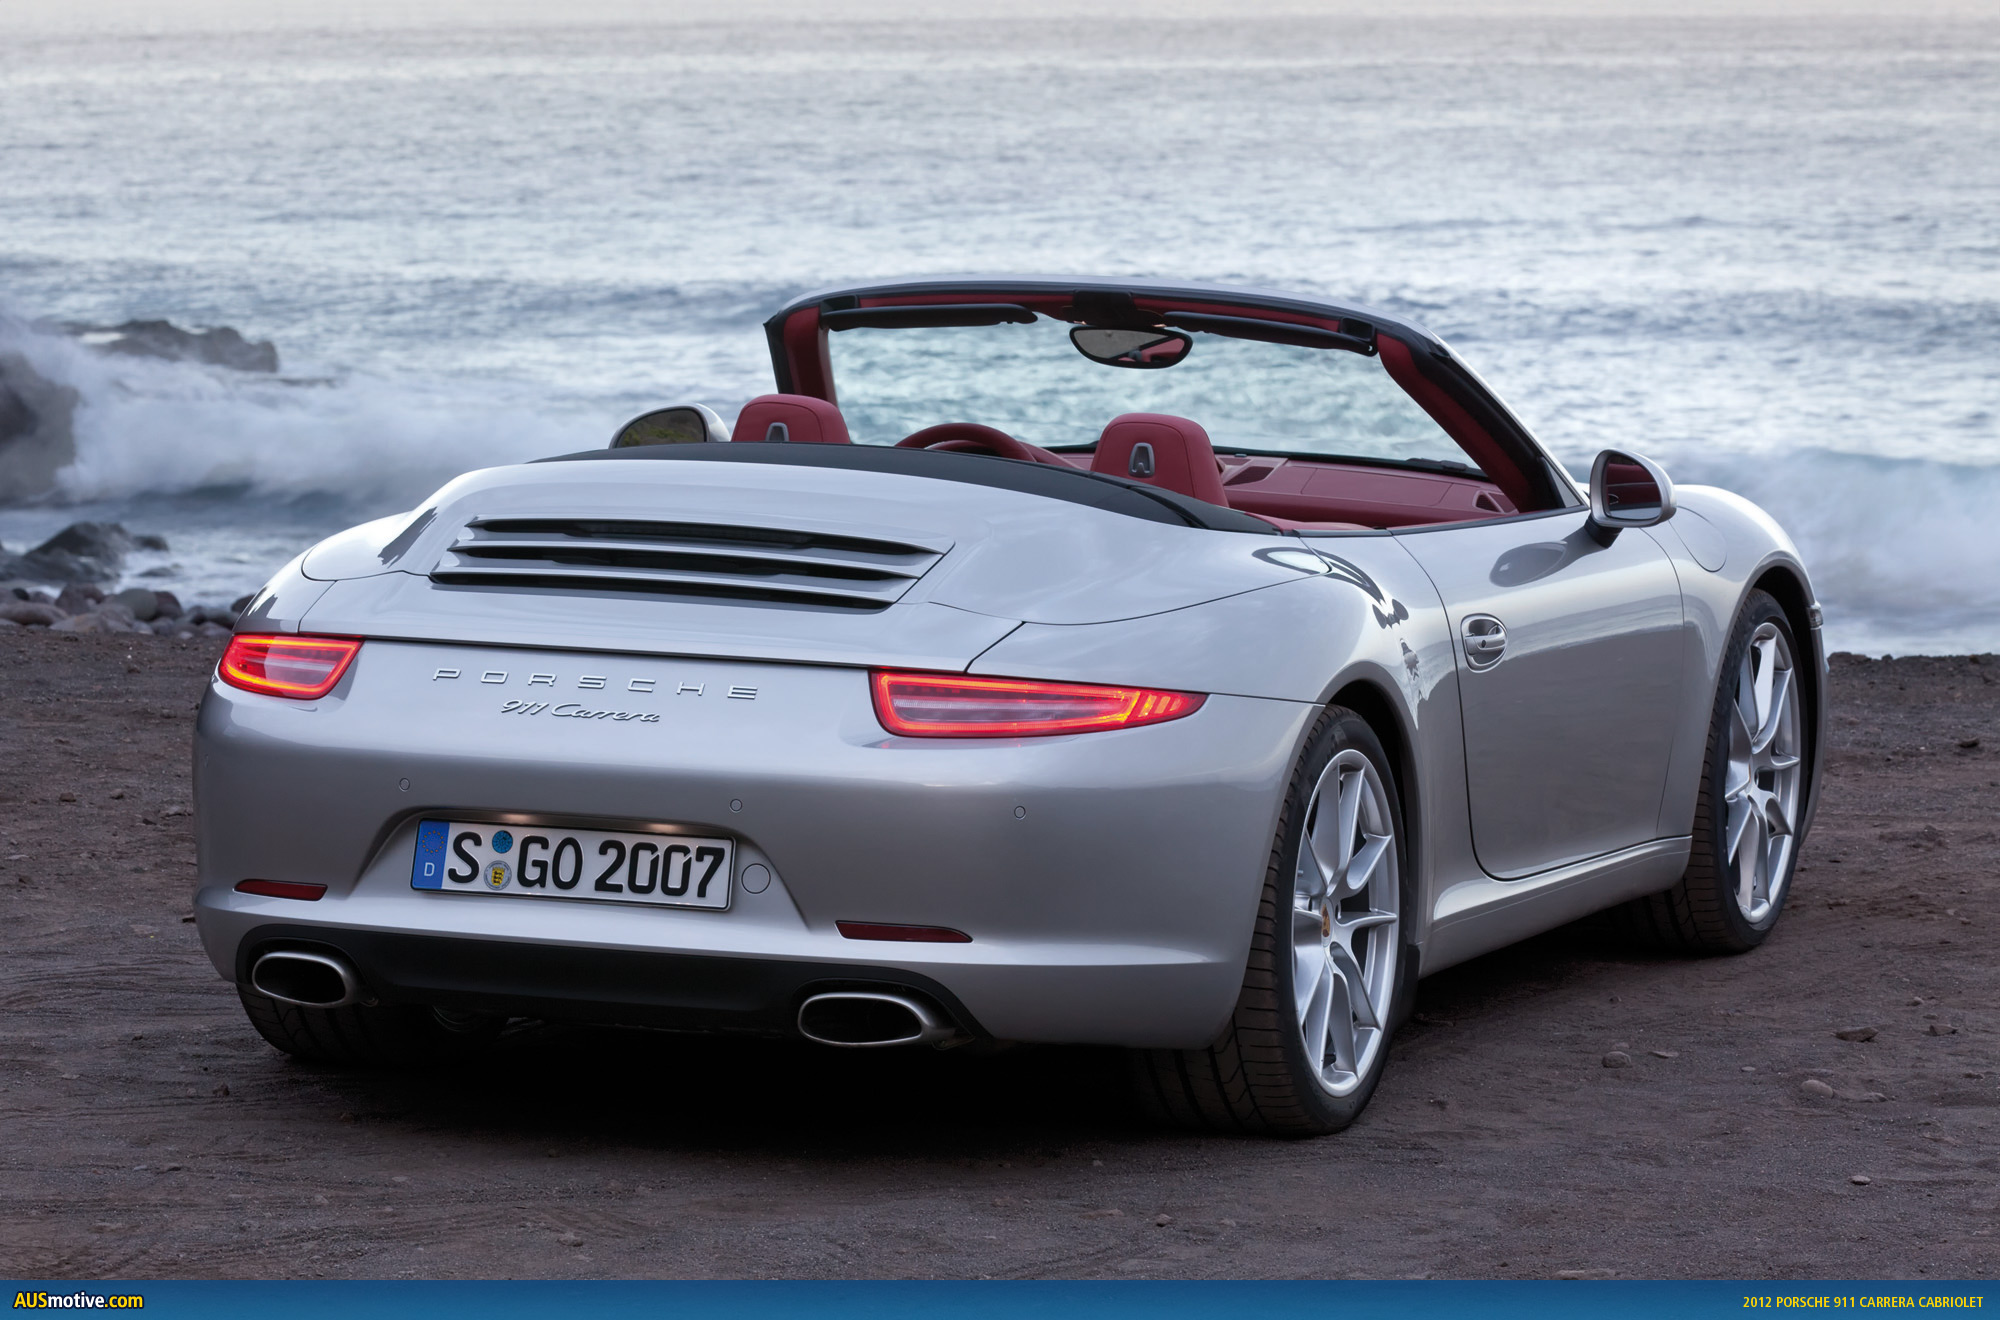 detroit 2012 porsche 911 carrera cabriolet. Black Bedroom Furniture Sets. Home Design Ideas